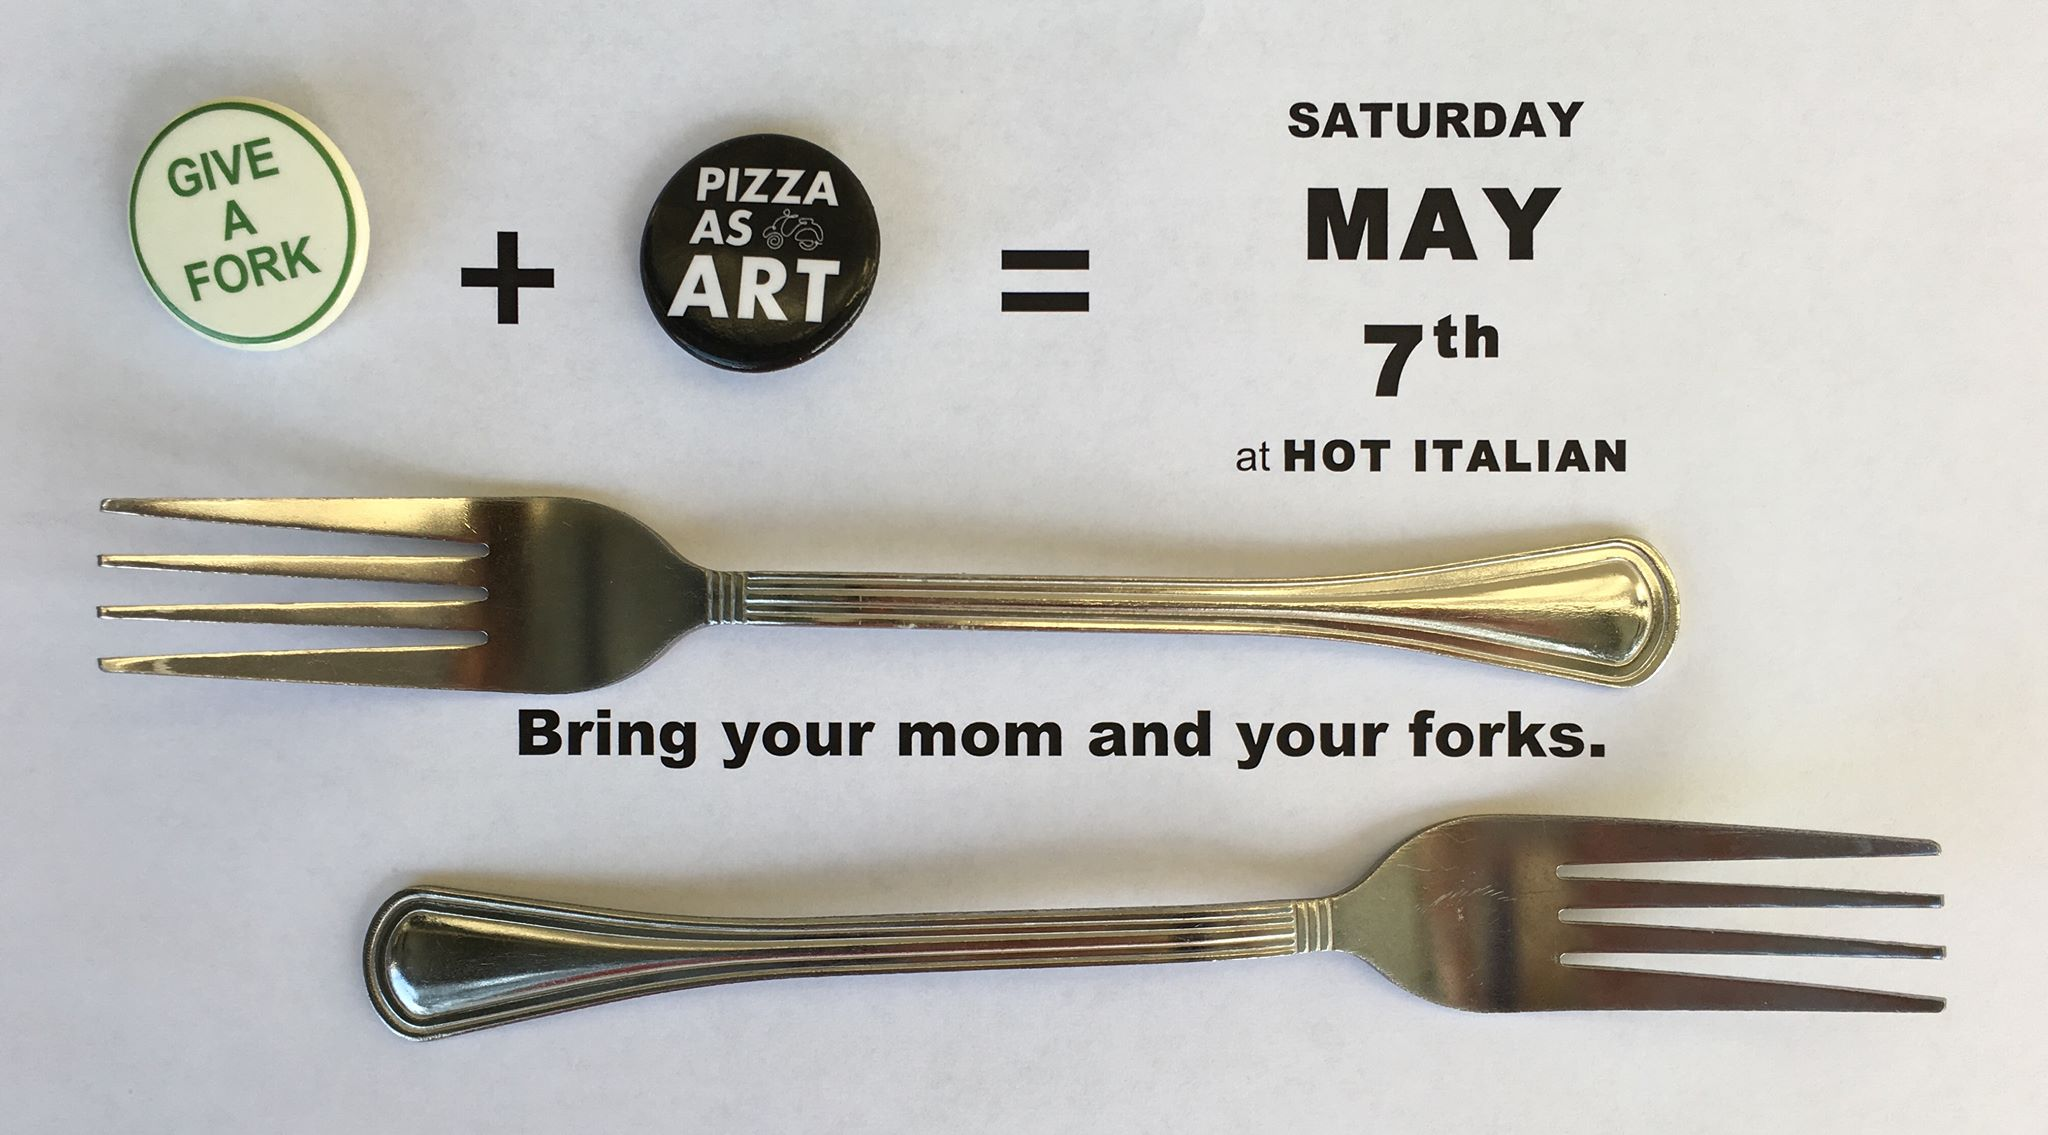 GIVE A FORK Fork Drive & Fundraiser